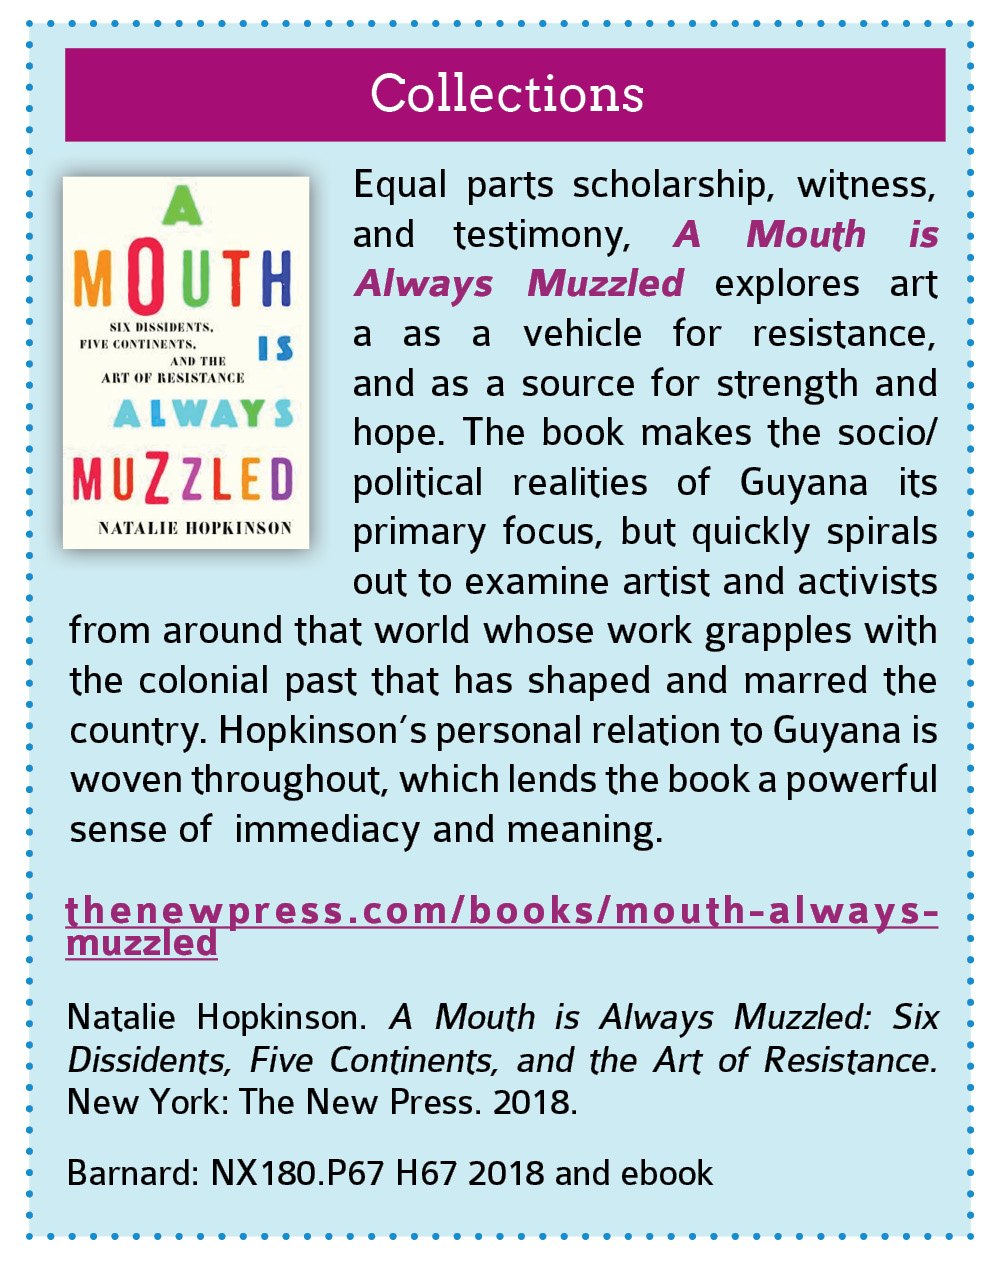 Collections:  Equal parts scholarship, witness, and testimony, A Mouth is Always Muzzled explores art a as a vehicle for resistance, and as a source for strength and hope. The book makes the socio/political realities of Guyana its primary focus, but quickly spirals out to examine artist and activists from around that world whose work grapples with the colonial past that has shaped and marred the country. Hopkinson's personal relation to Guyana is woven throughout, which lends the book a powerful sense of  immediacy and meaning.   thenewpress.com/books/mouth-always-muzzled  Natalie Hopkinson. A Mouth is Always Muzzled: Six Dissidents, Five Continents, and the Art of Resistance. New York: The New Press. 2018.  Barnard: NX180.P67 H67 2018 and ebook. Click this link to open the Columbia CLIO listing for this book in a new tab.